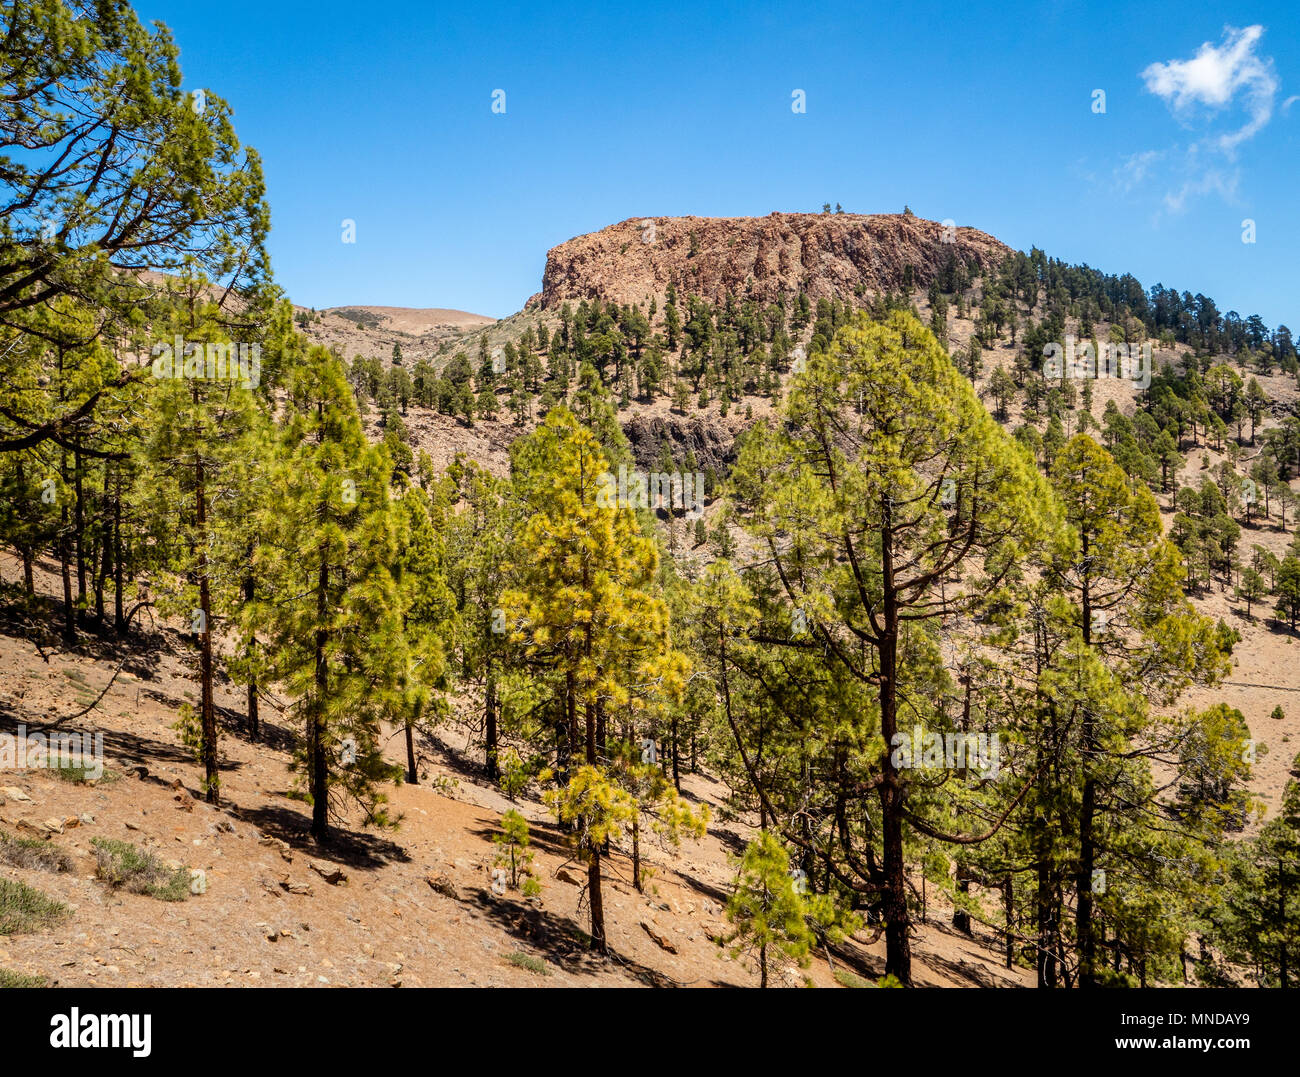 Sparse forest of Canary pines part of the Corona Forestal around the outer crater rim of Mount Teide on Tenerife in the Canary Islands - Stock Image